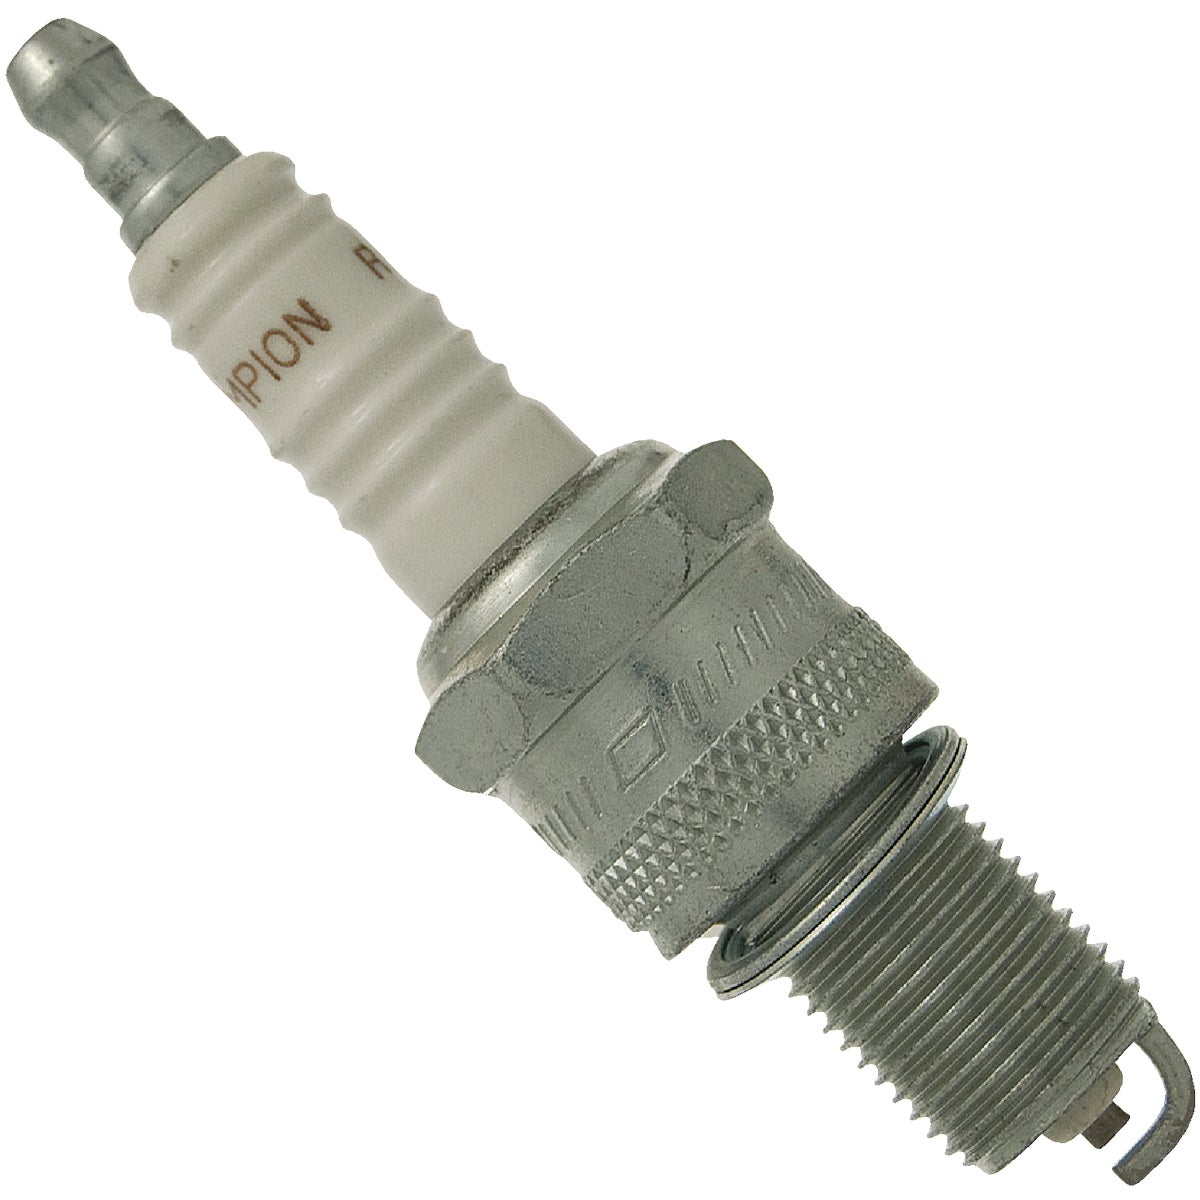 RN11YC4 SPARK PLUG - 322 by Federal Mogul